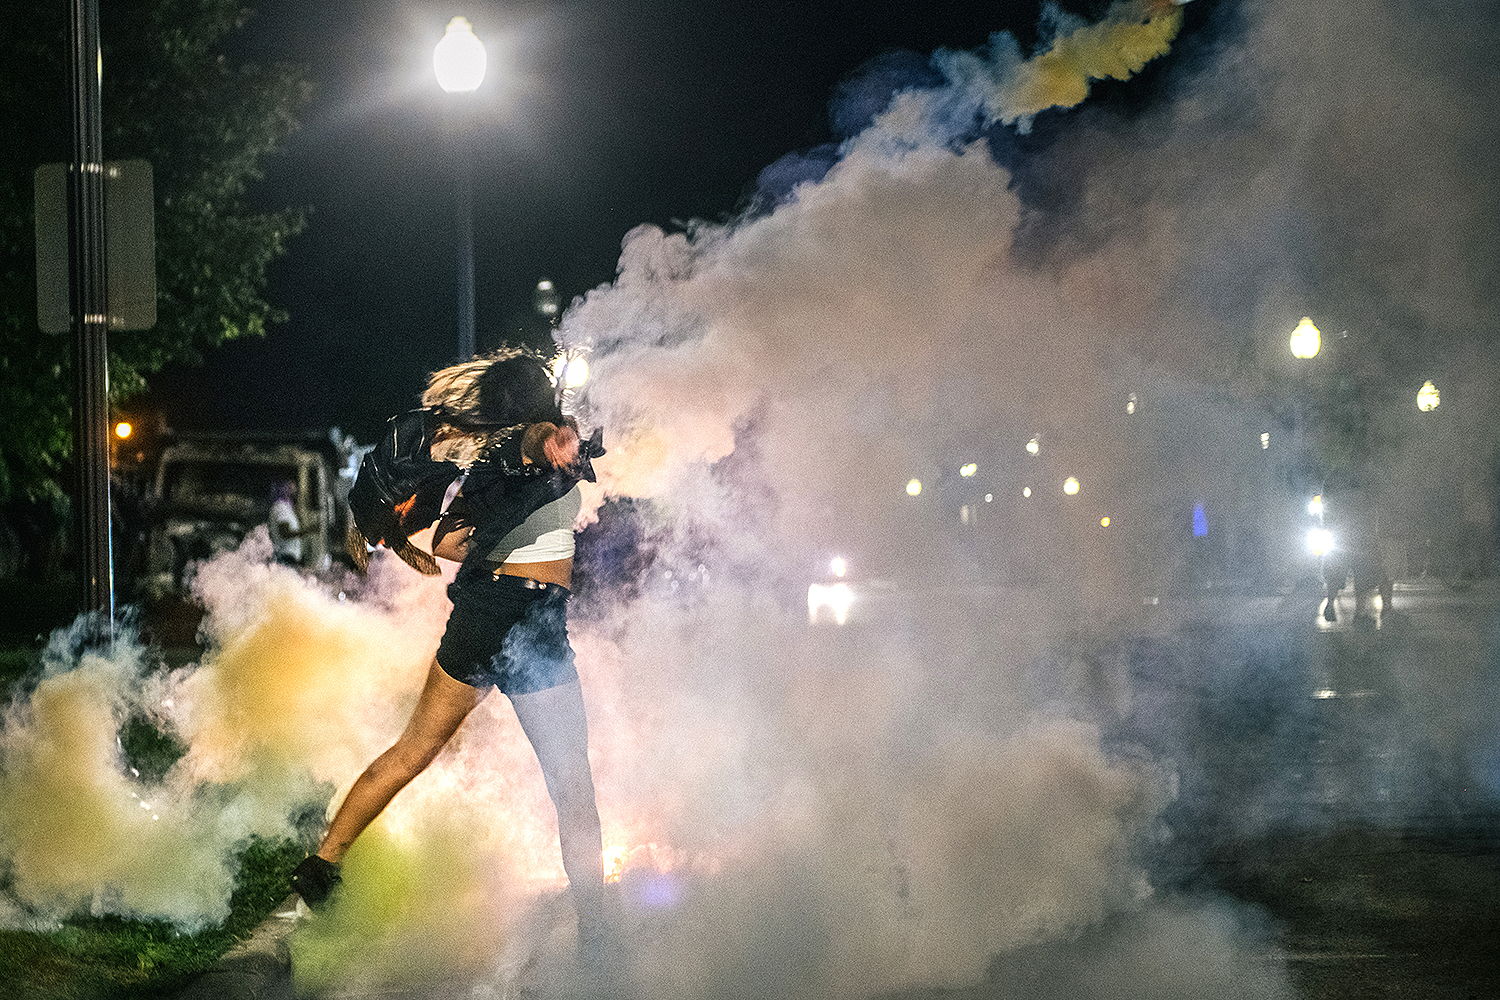 A demonstrator throws back a can of tear gas in Kenosha, Wisconsin, on Aug. 25 during protests two days after Jacob Blake, a Black man, was shot multiple times in the back by police. Brandon Bell/Getty Images